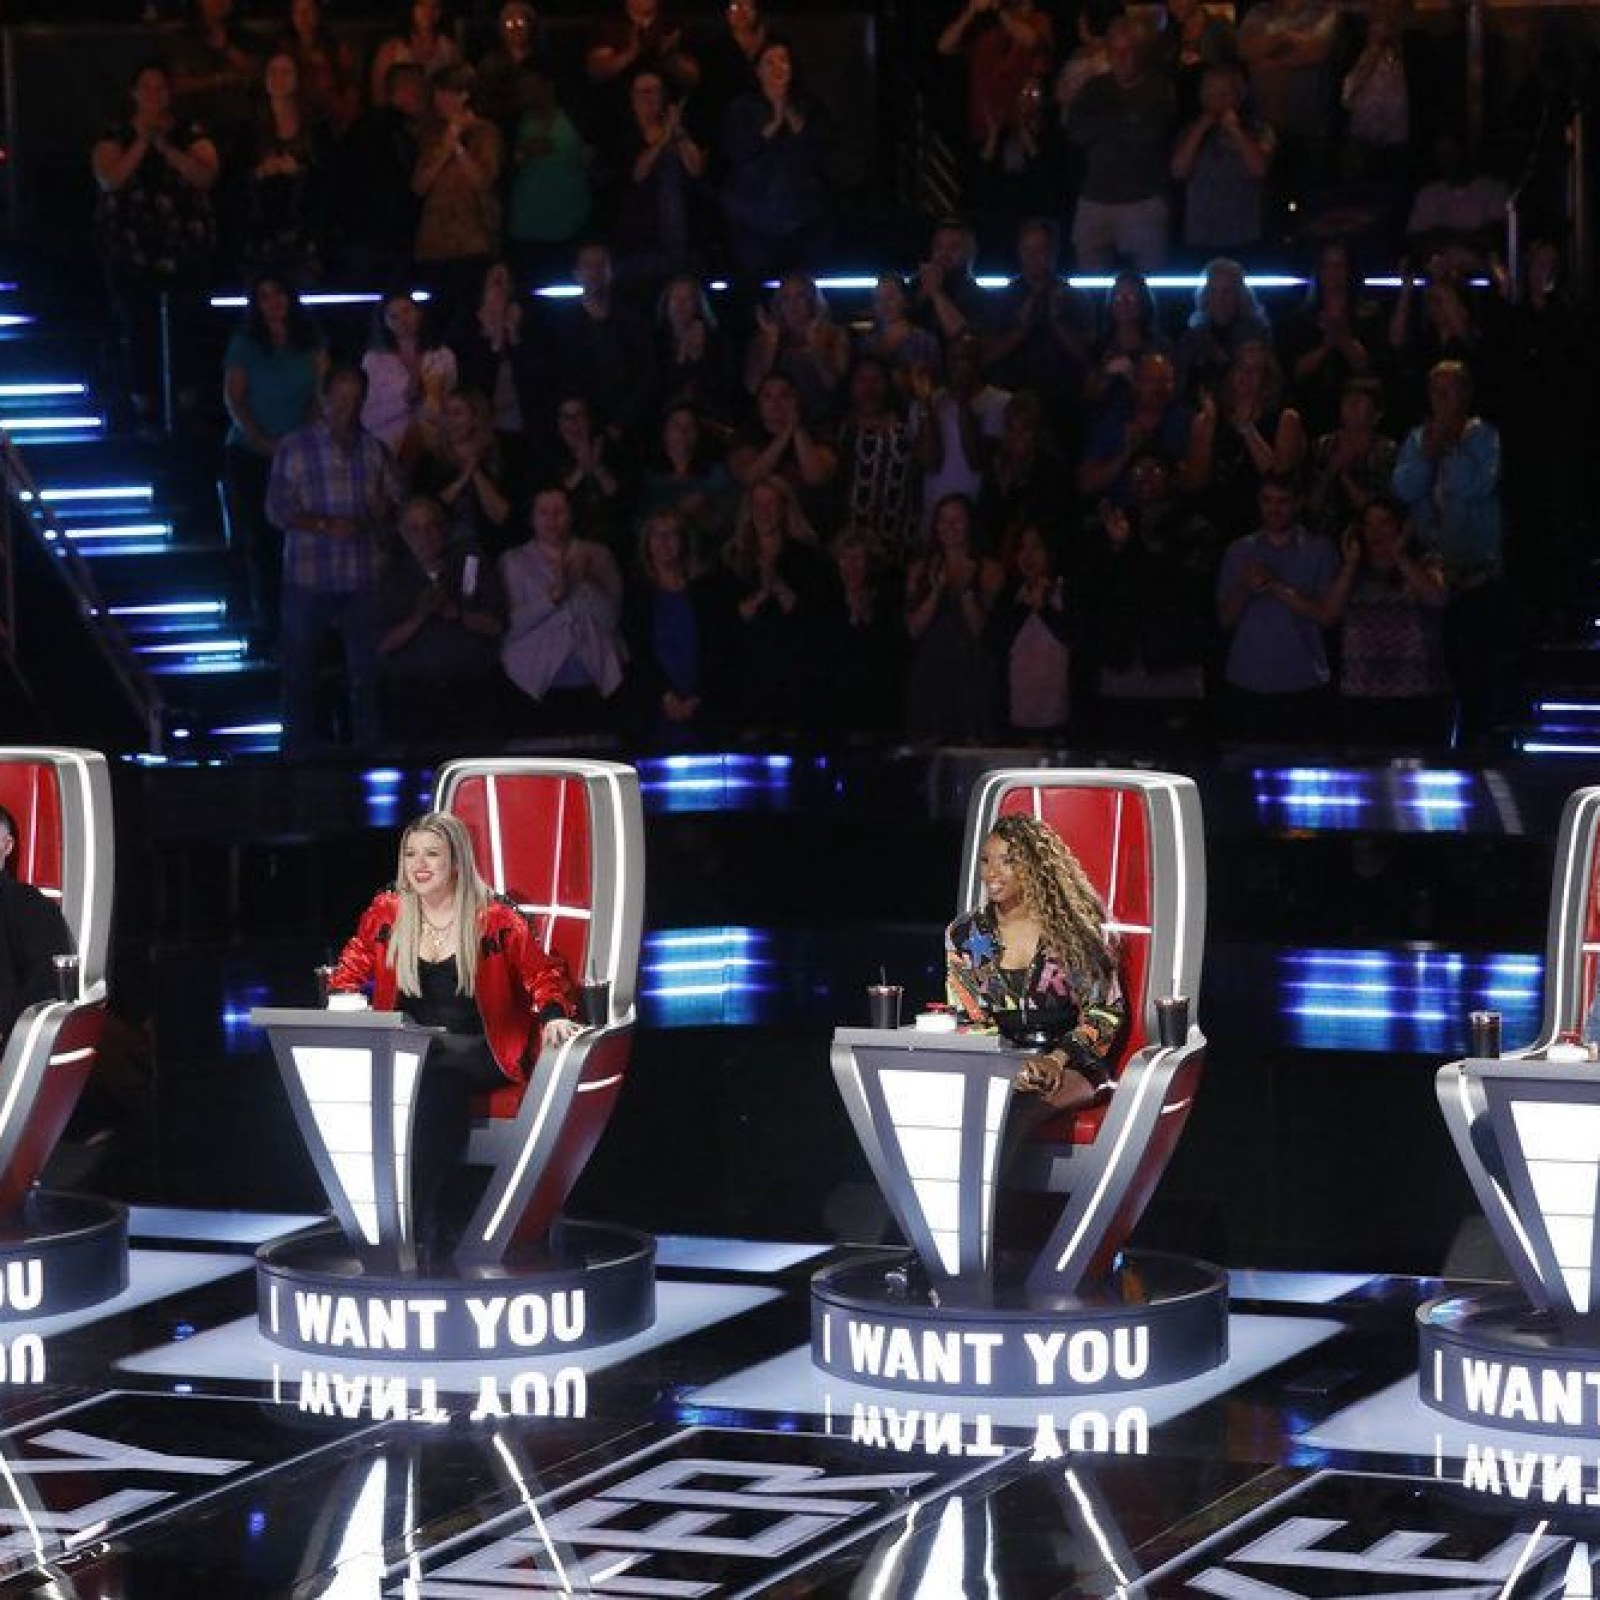 The Voice' Season 15 Blind Auditions 3 Recap & Results: Who